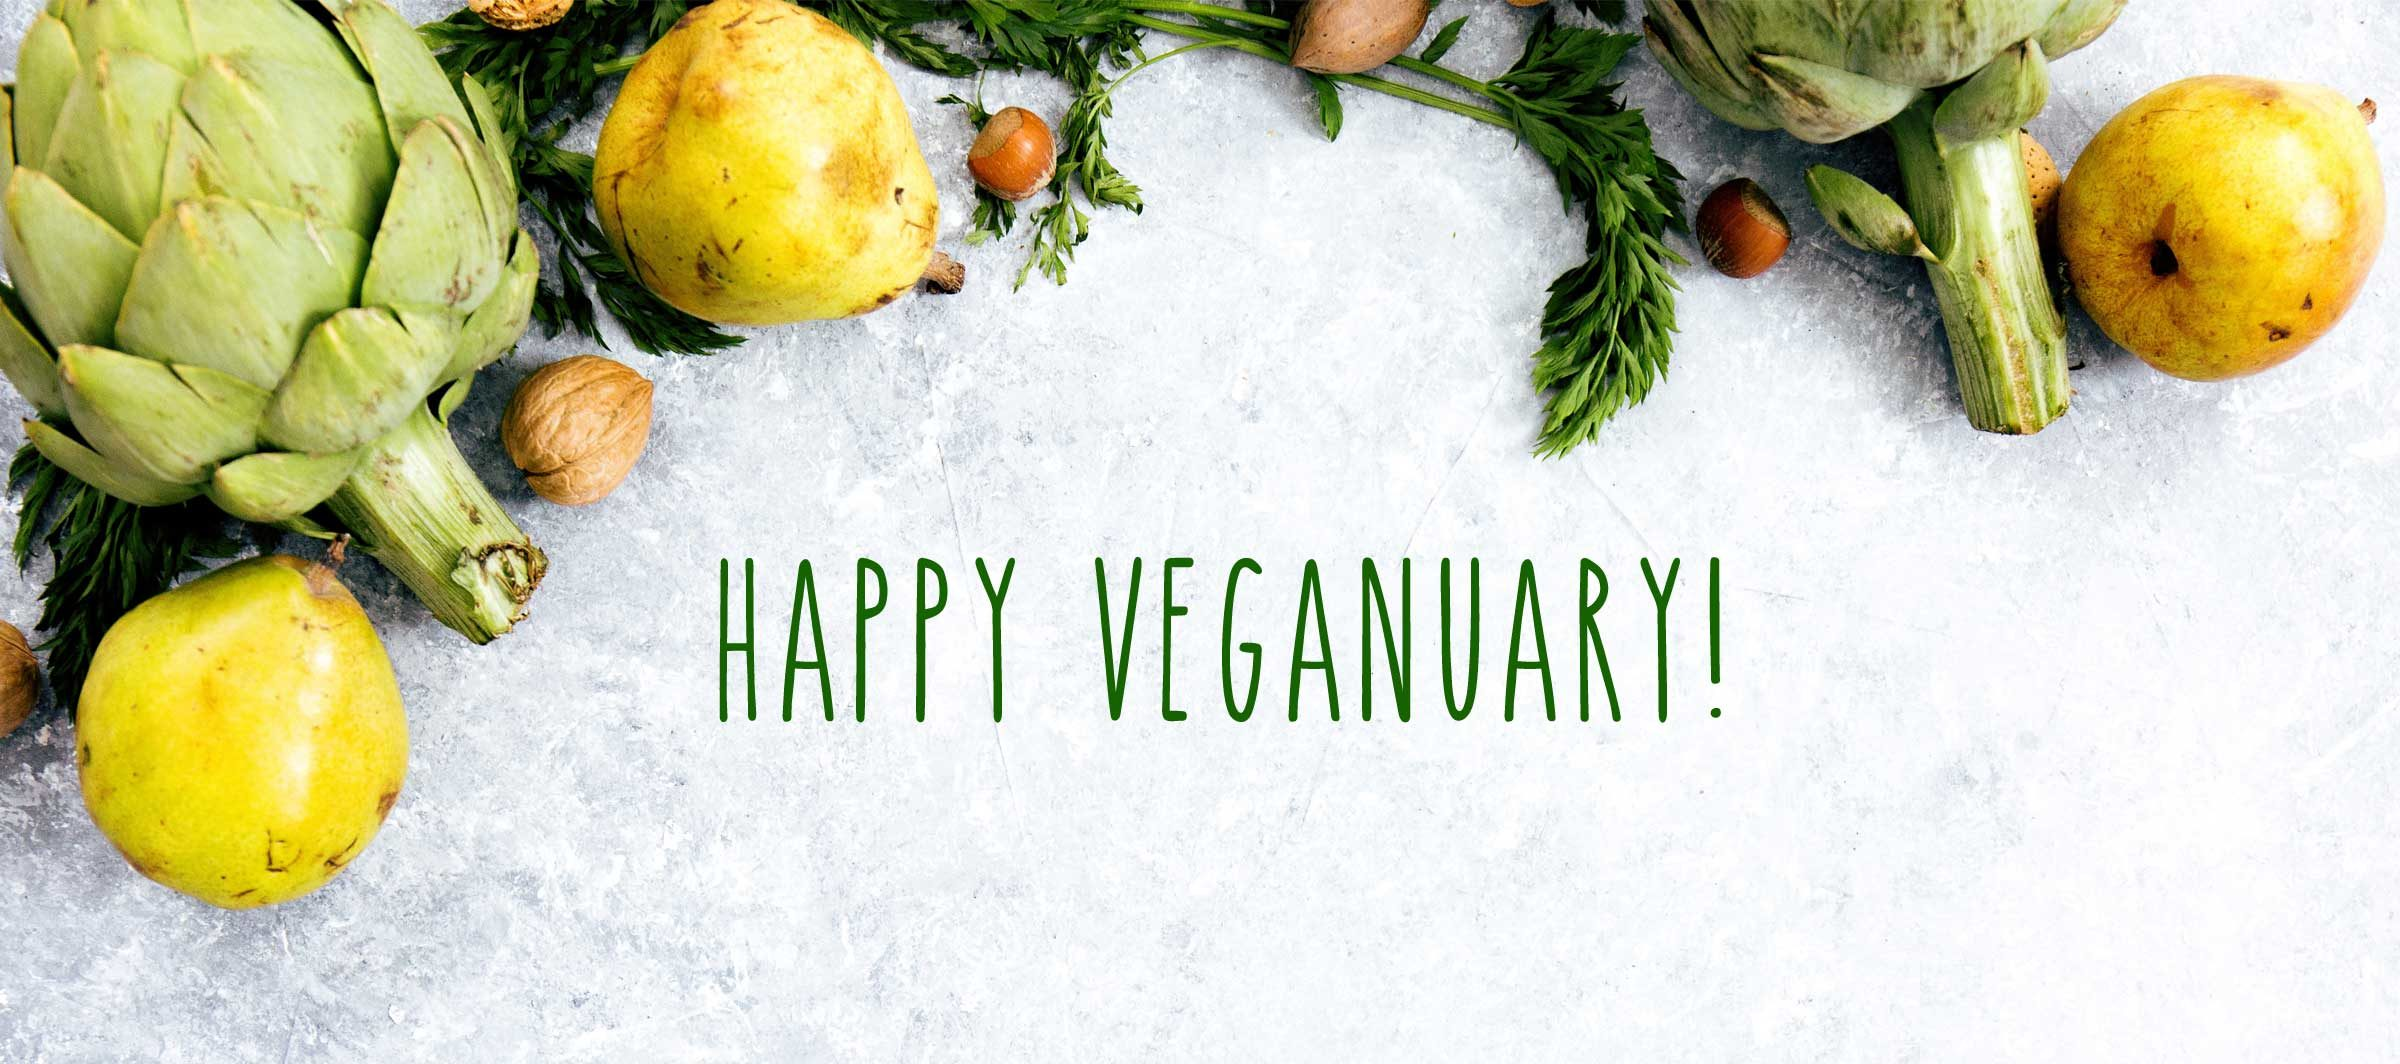 Happy Veganuary!